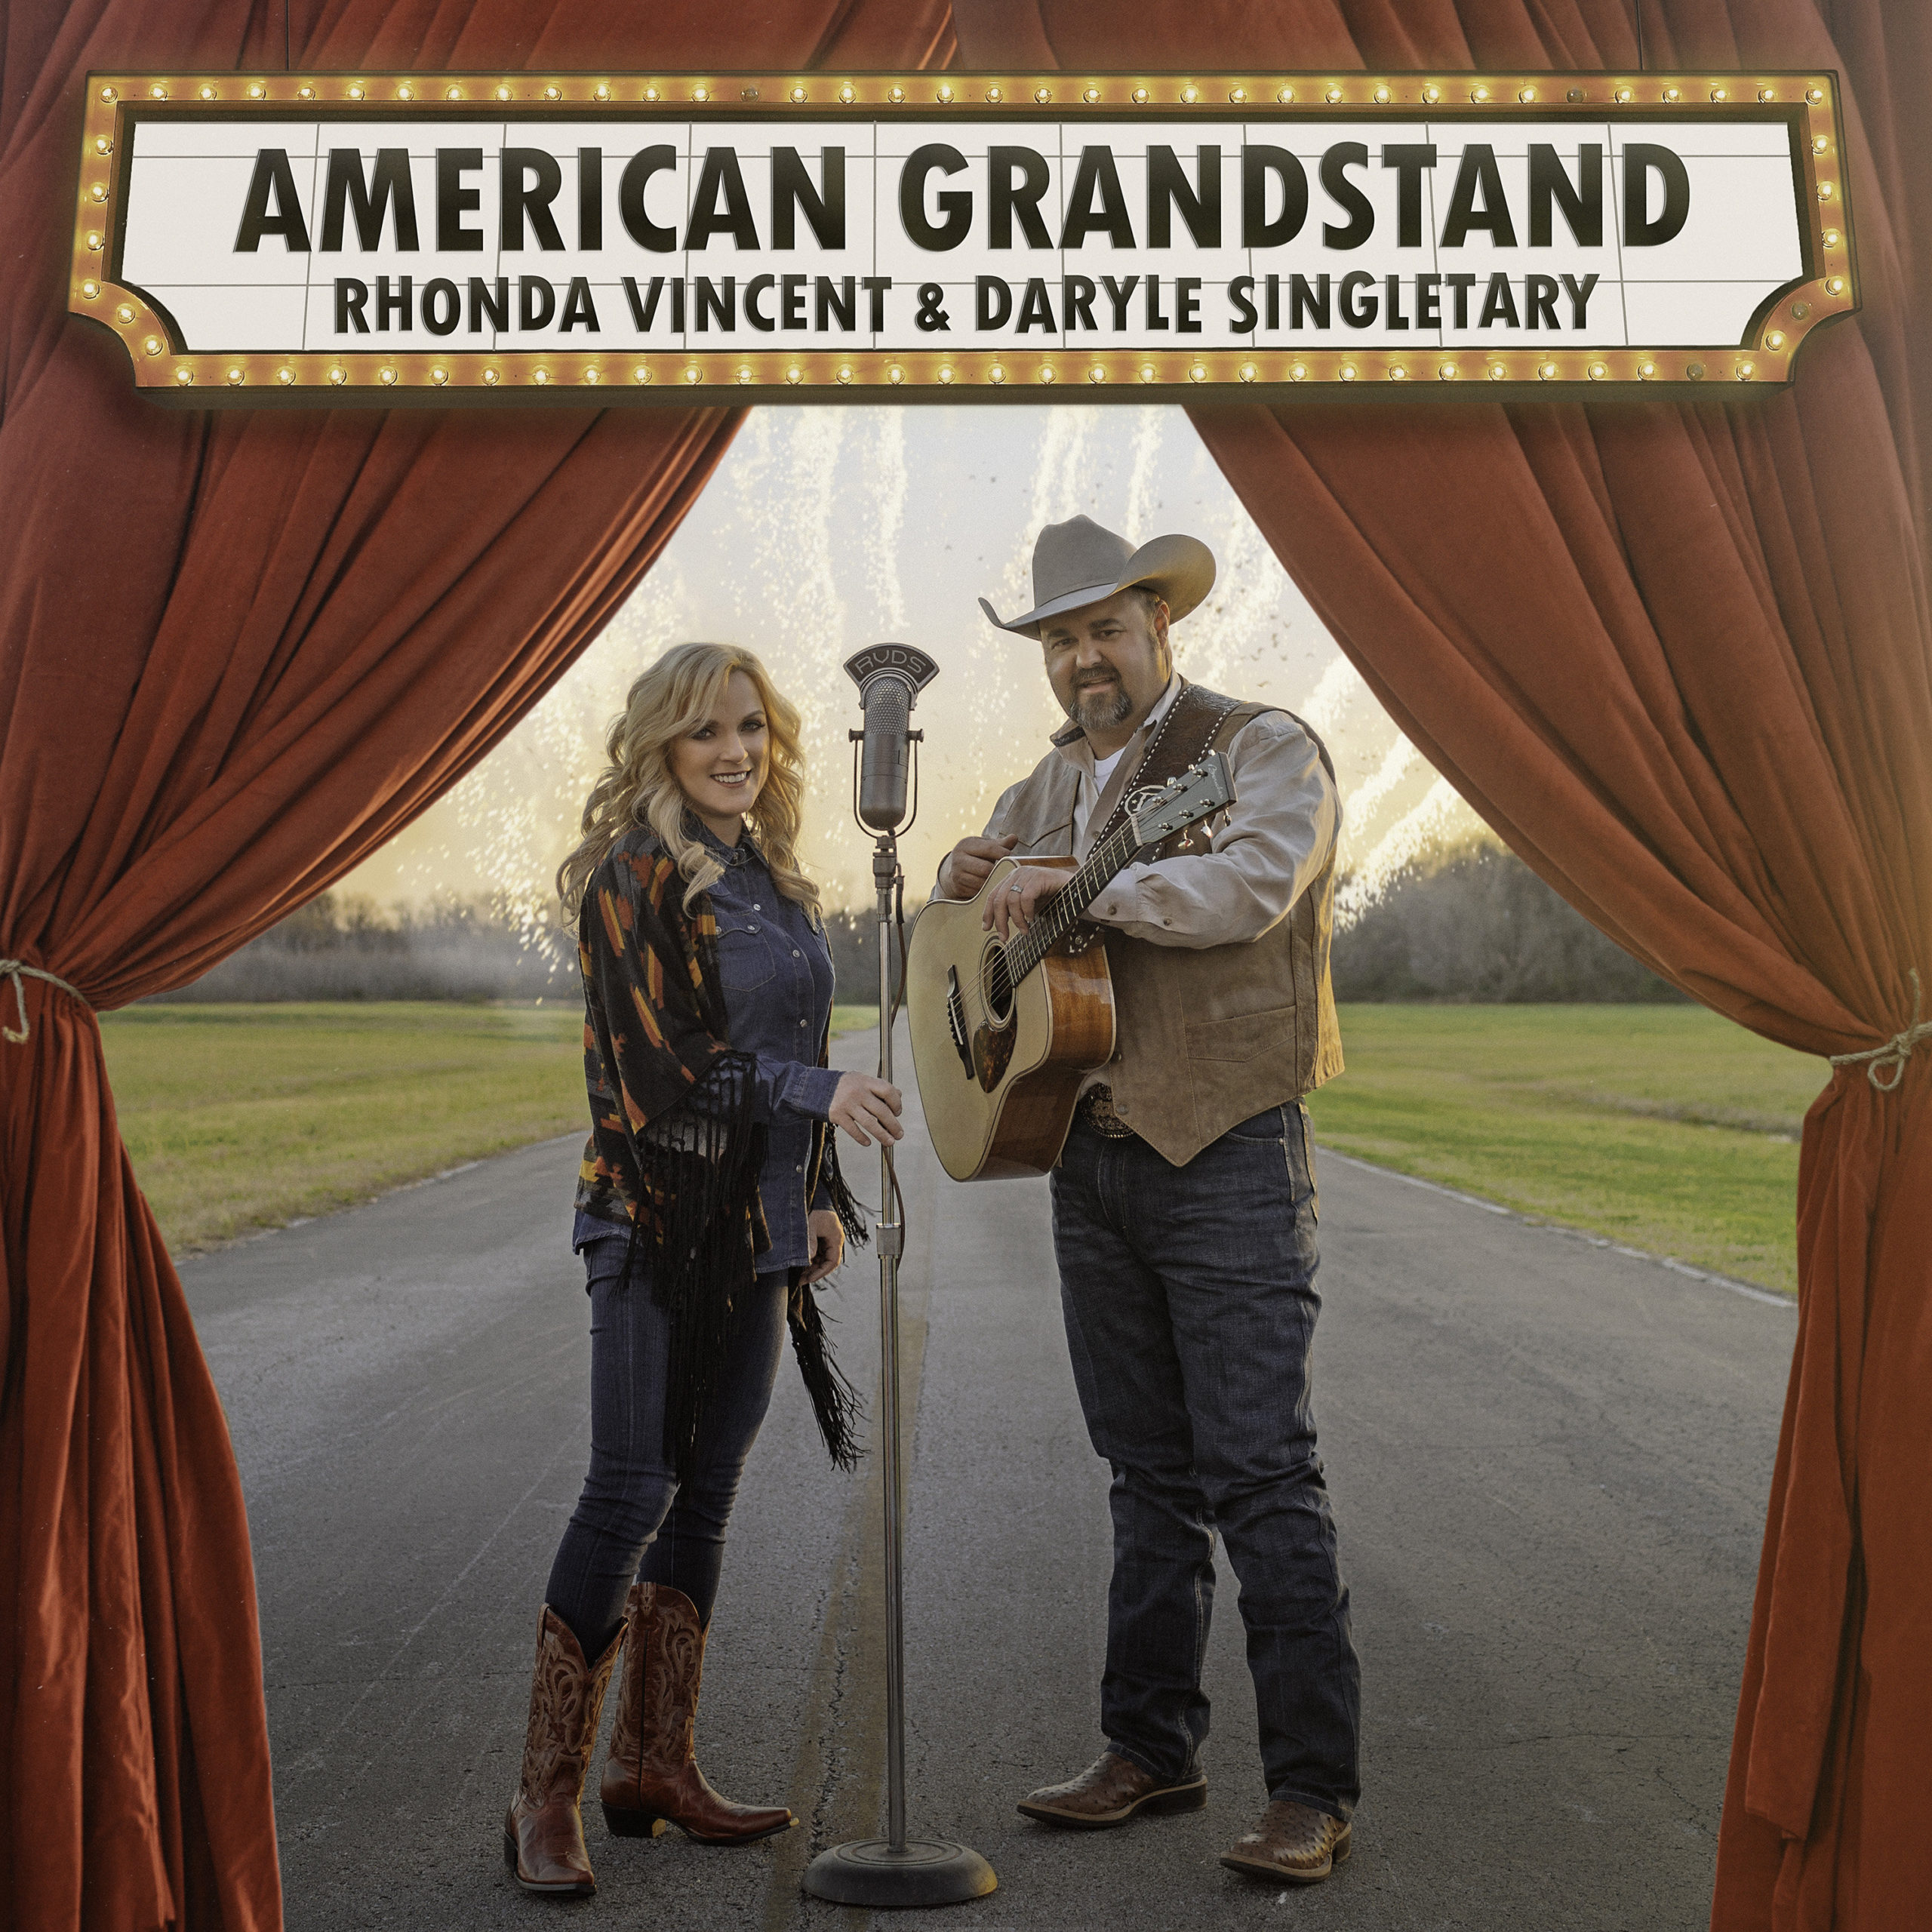 Rhonda Vincent & Daryle Singletary Show That Traditional Country Is Still Alive